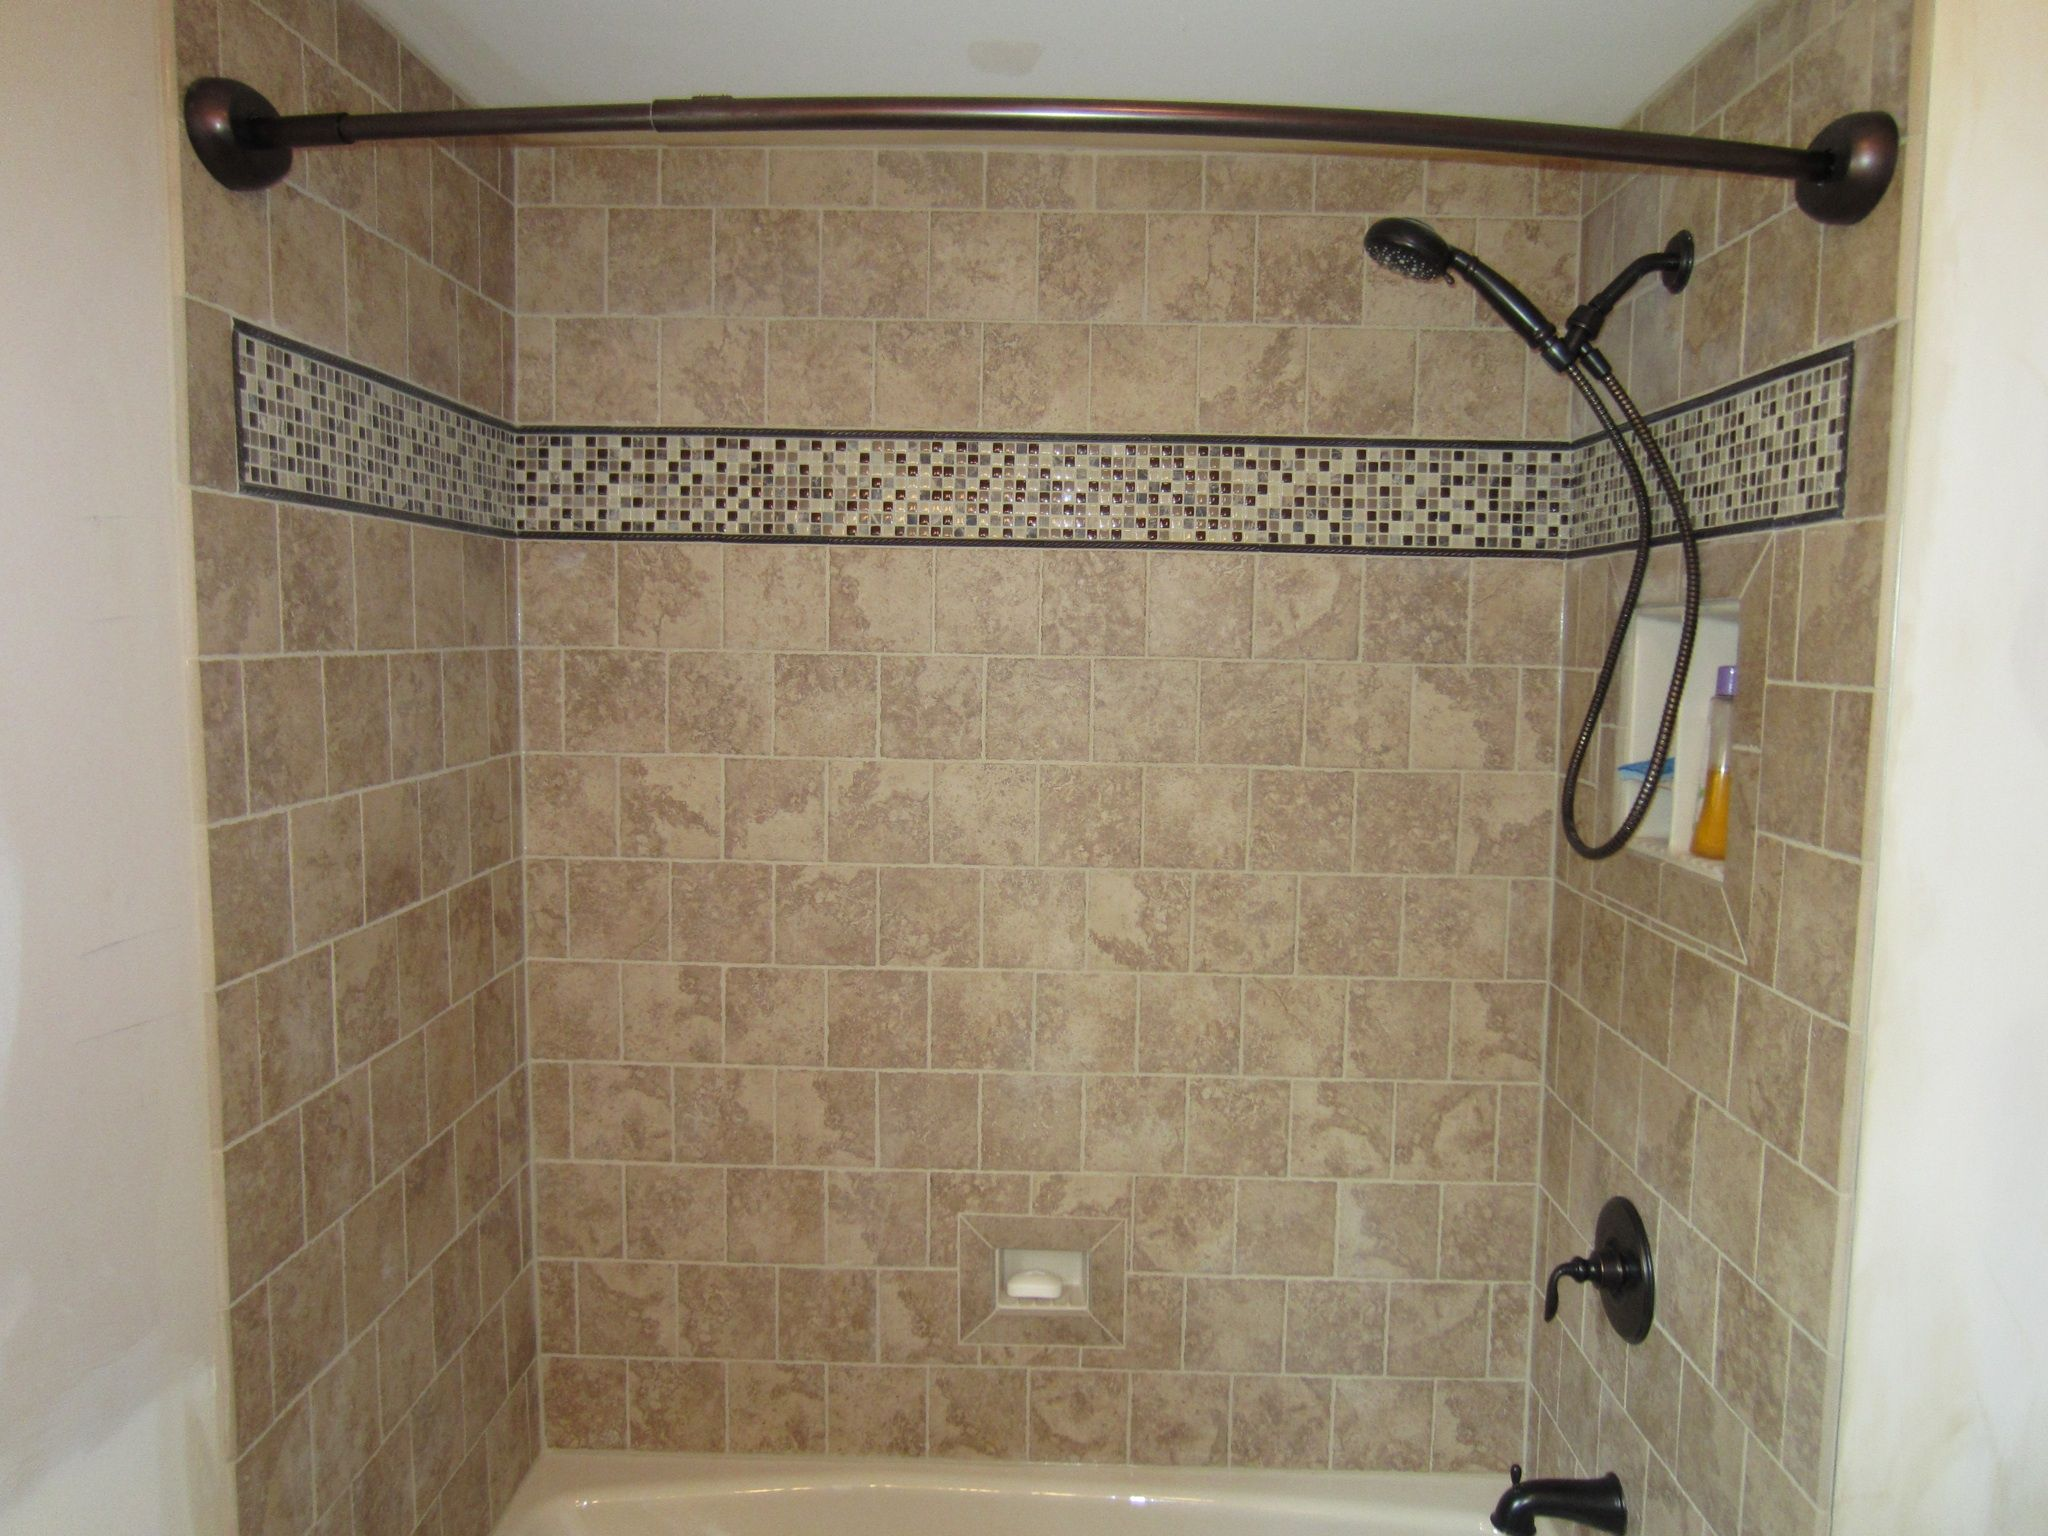 We Installed All New Tiles On The Wall A New Tub Recessed Shower